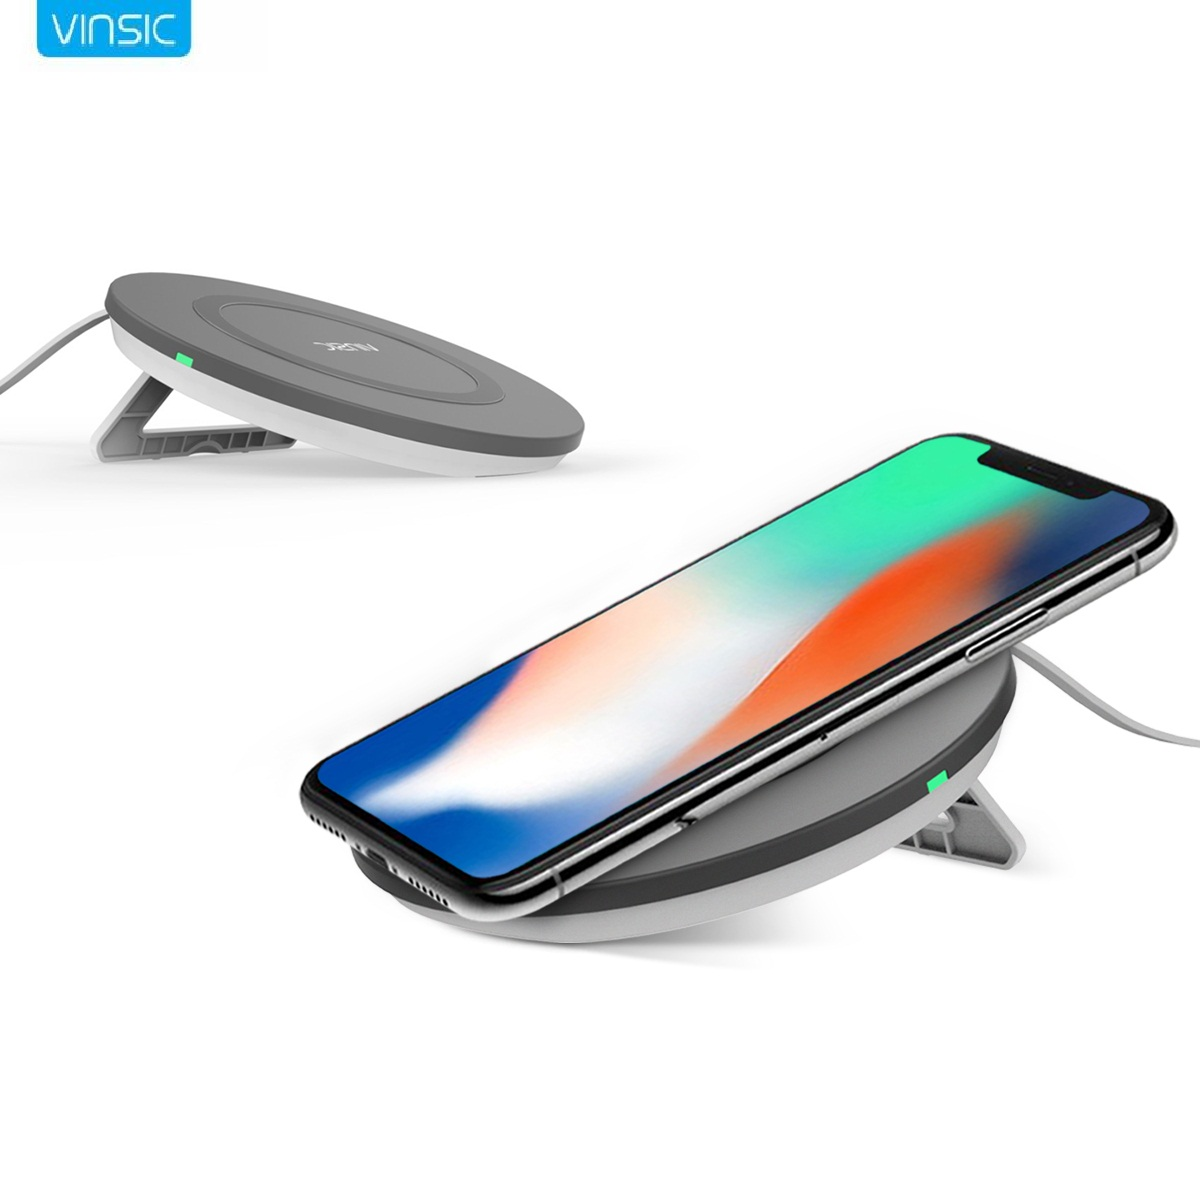 Newest Vinsic Qi Wireless Charger Pad Phone Stand Wireless Charger for SAMSUNG S8 S8+ S7 S7 Edge S6 S8 Edge Note 8 Lumia 950 Nexus 7 6